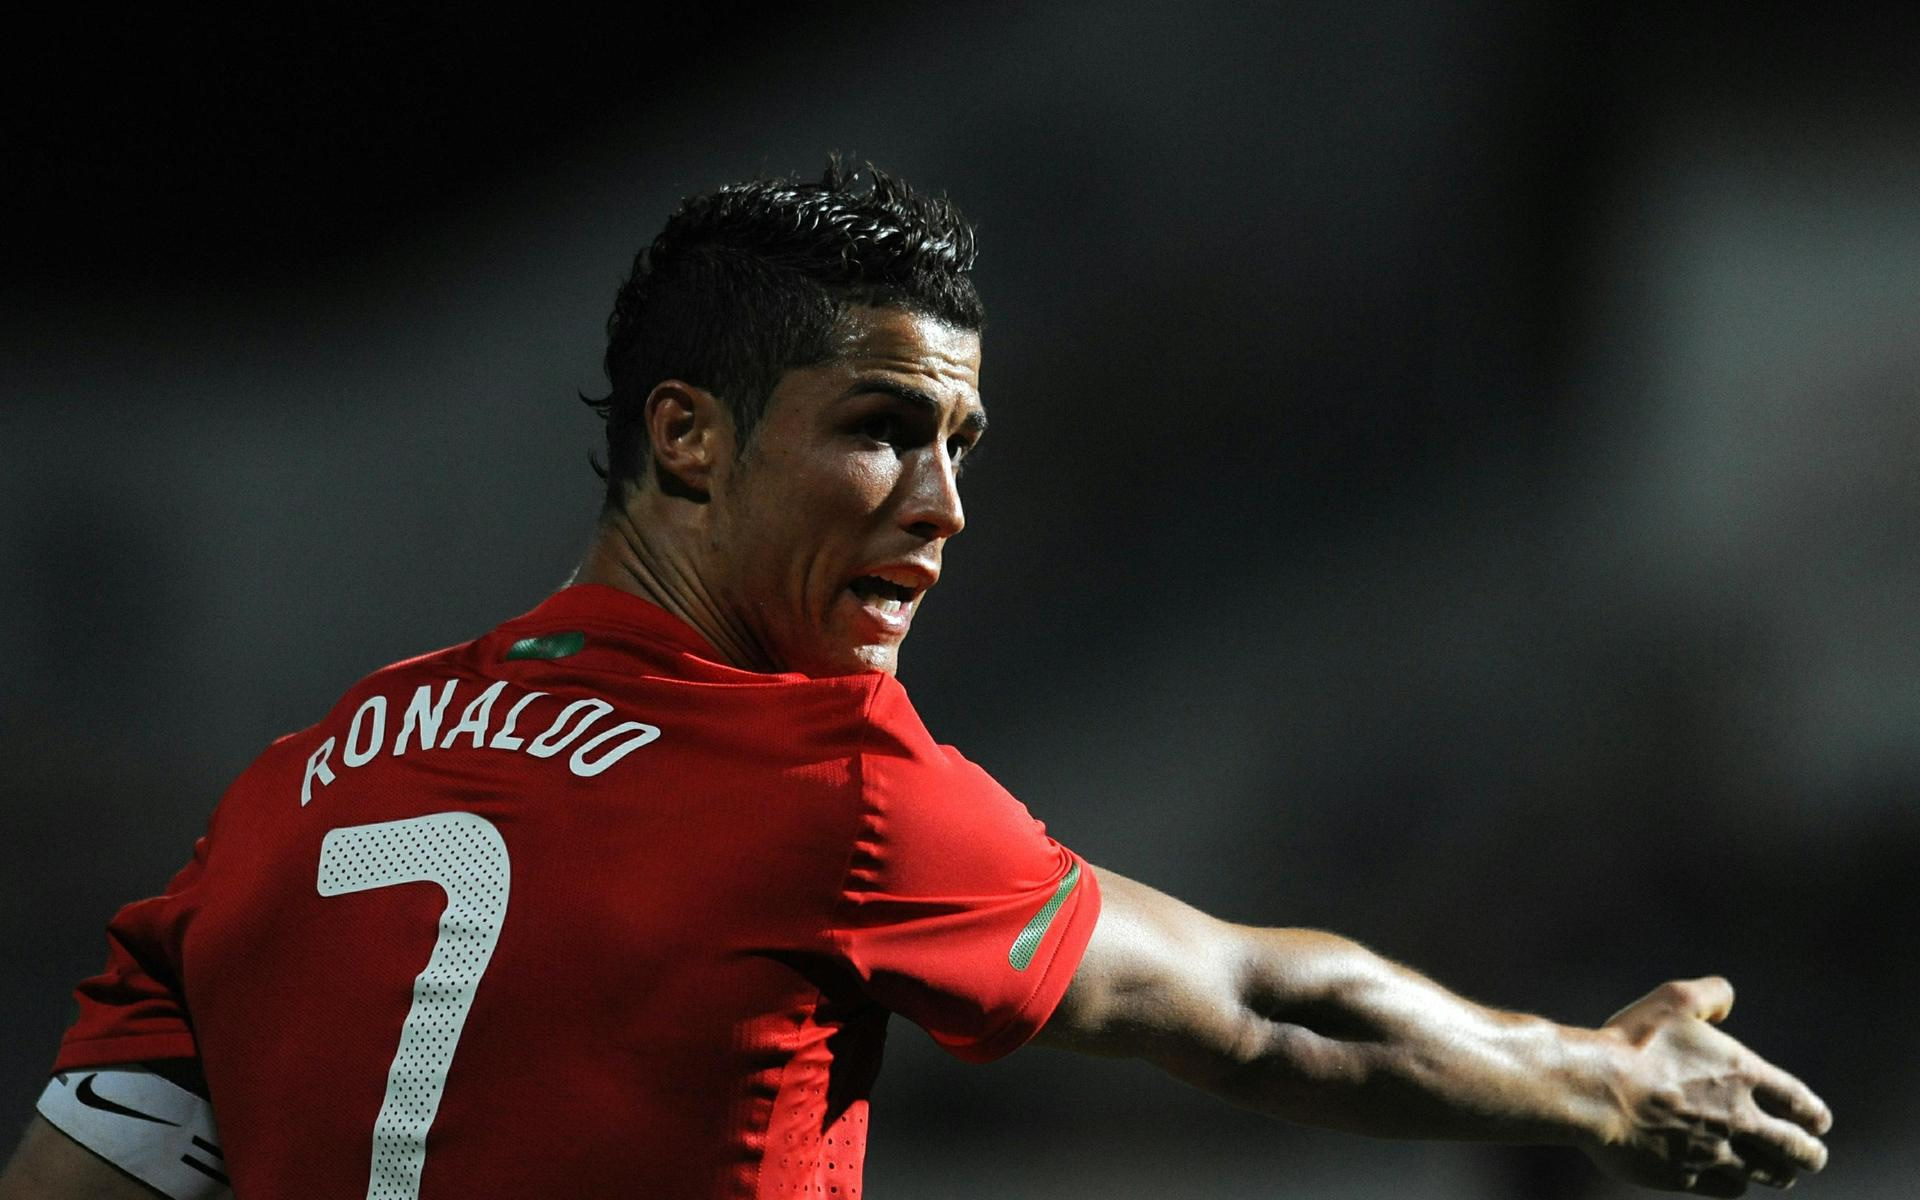 Cristiano Ronaldo pointing wallpaper